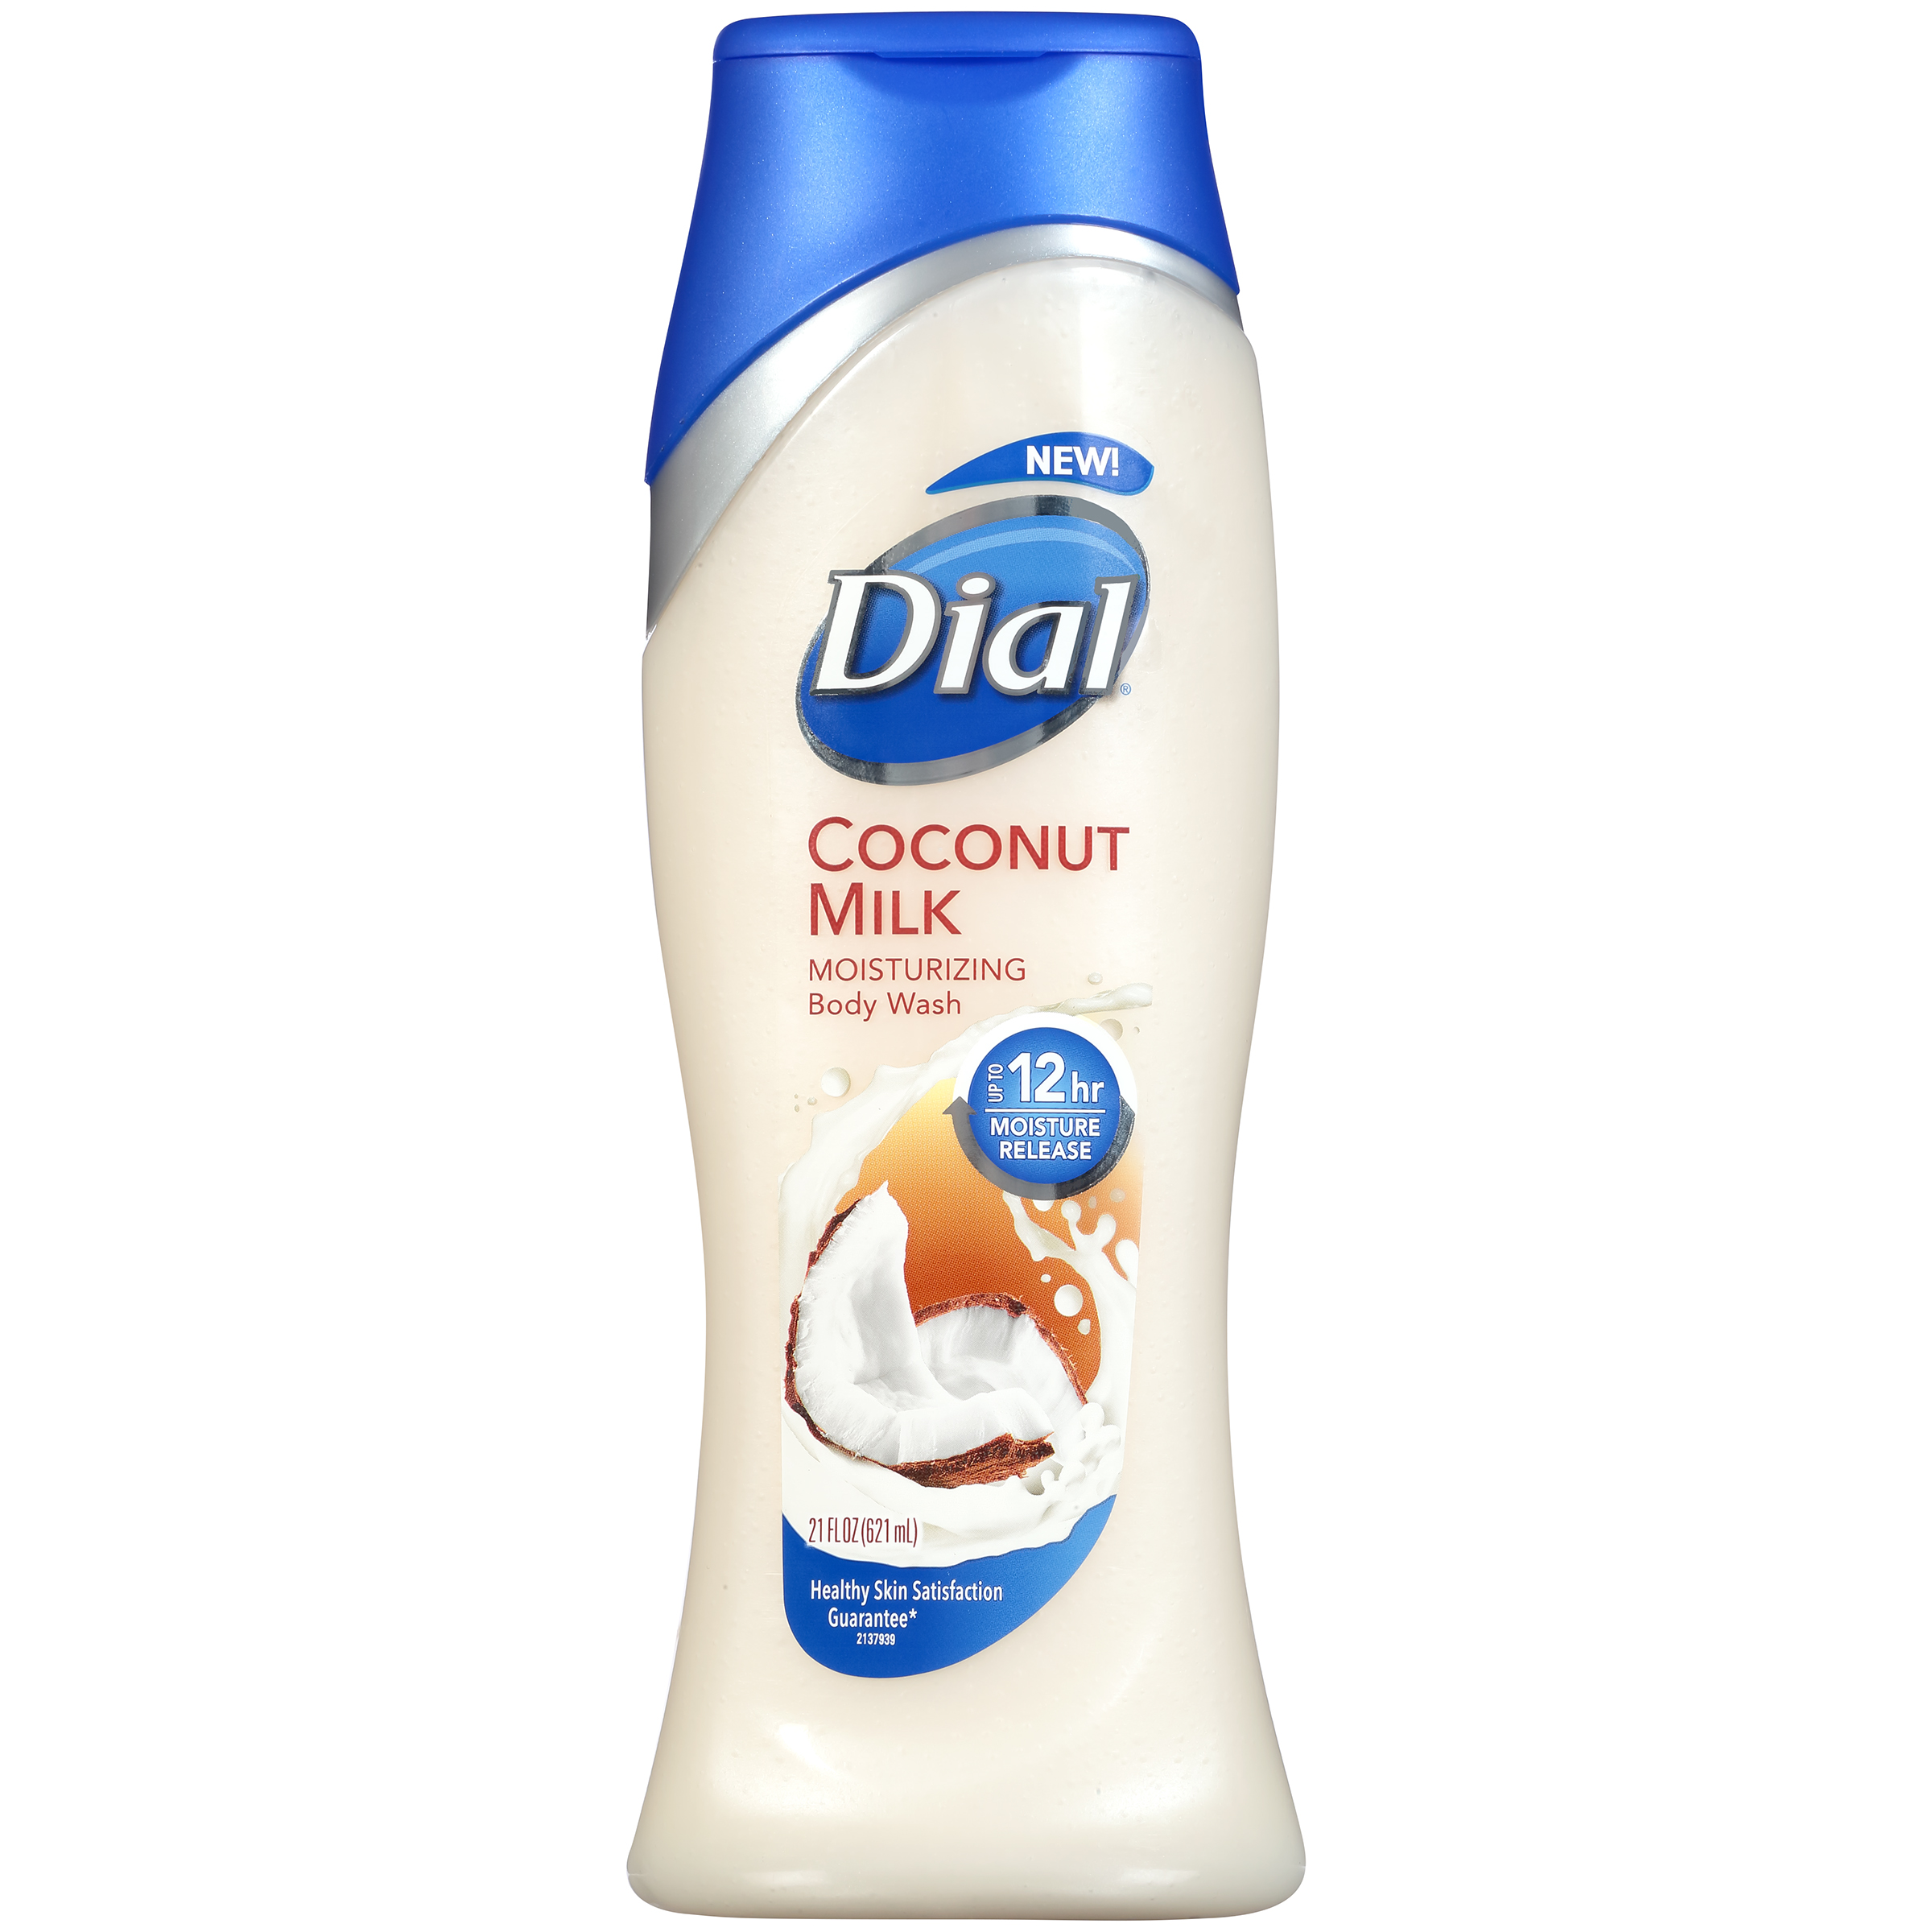 Dial Body Wash, Coconut Milk with Up to 12 Hour Moisture Release, 21 Fluid Ounces